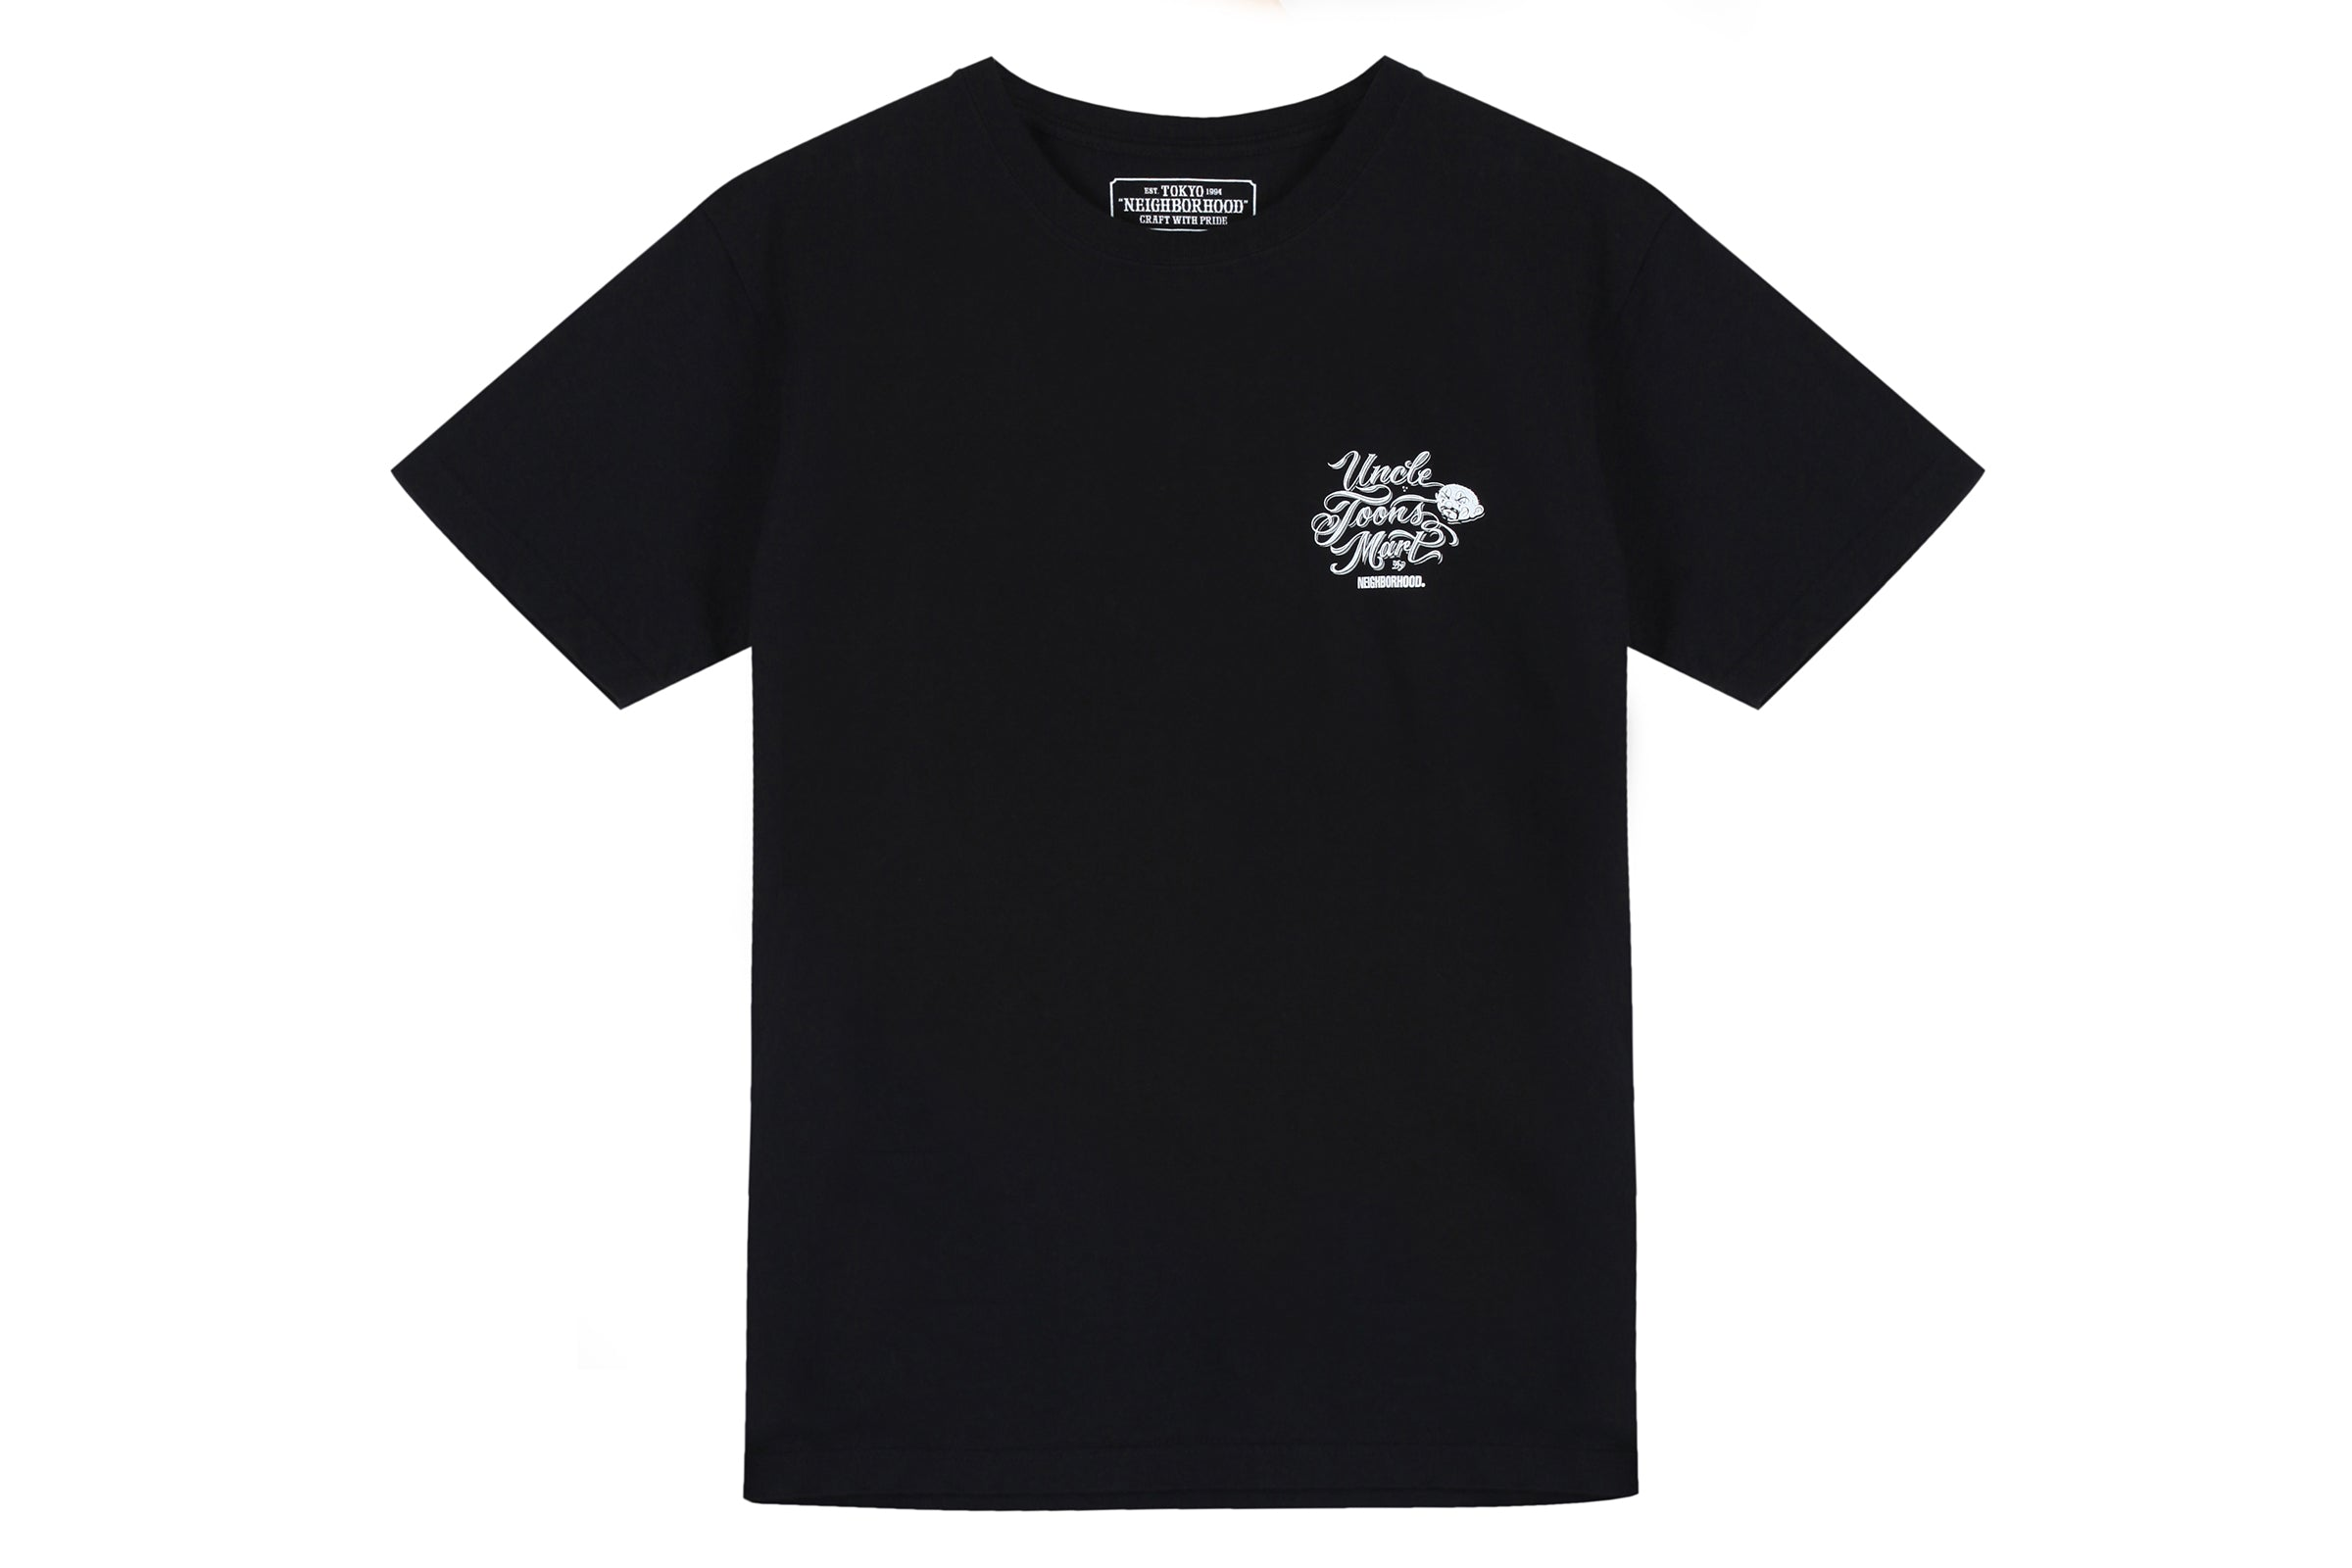 Neighborhood NHMC Toons Mart SS Tee 2 x Mister Cartoon